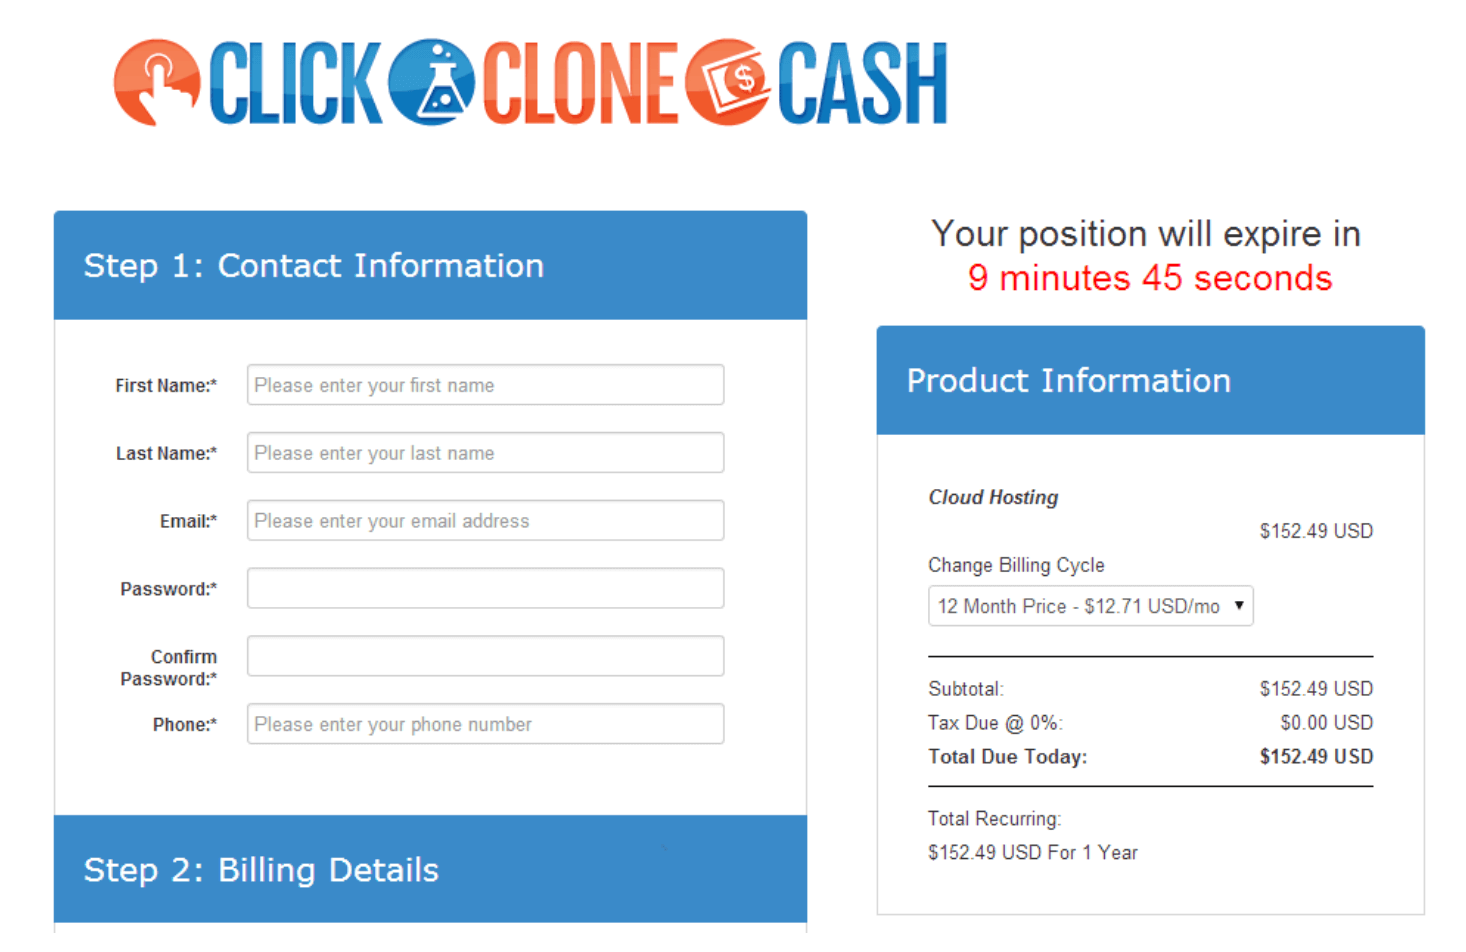 click-clone-cash-registration-form